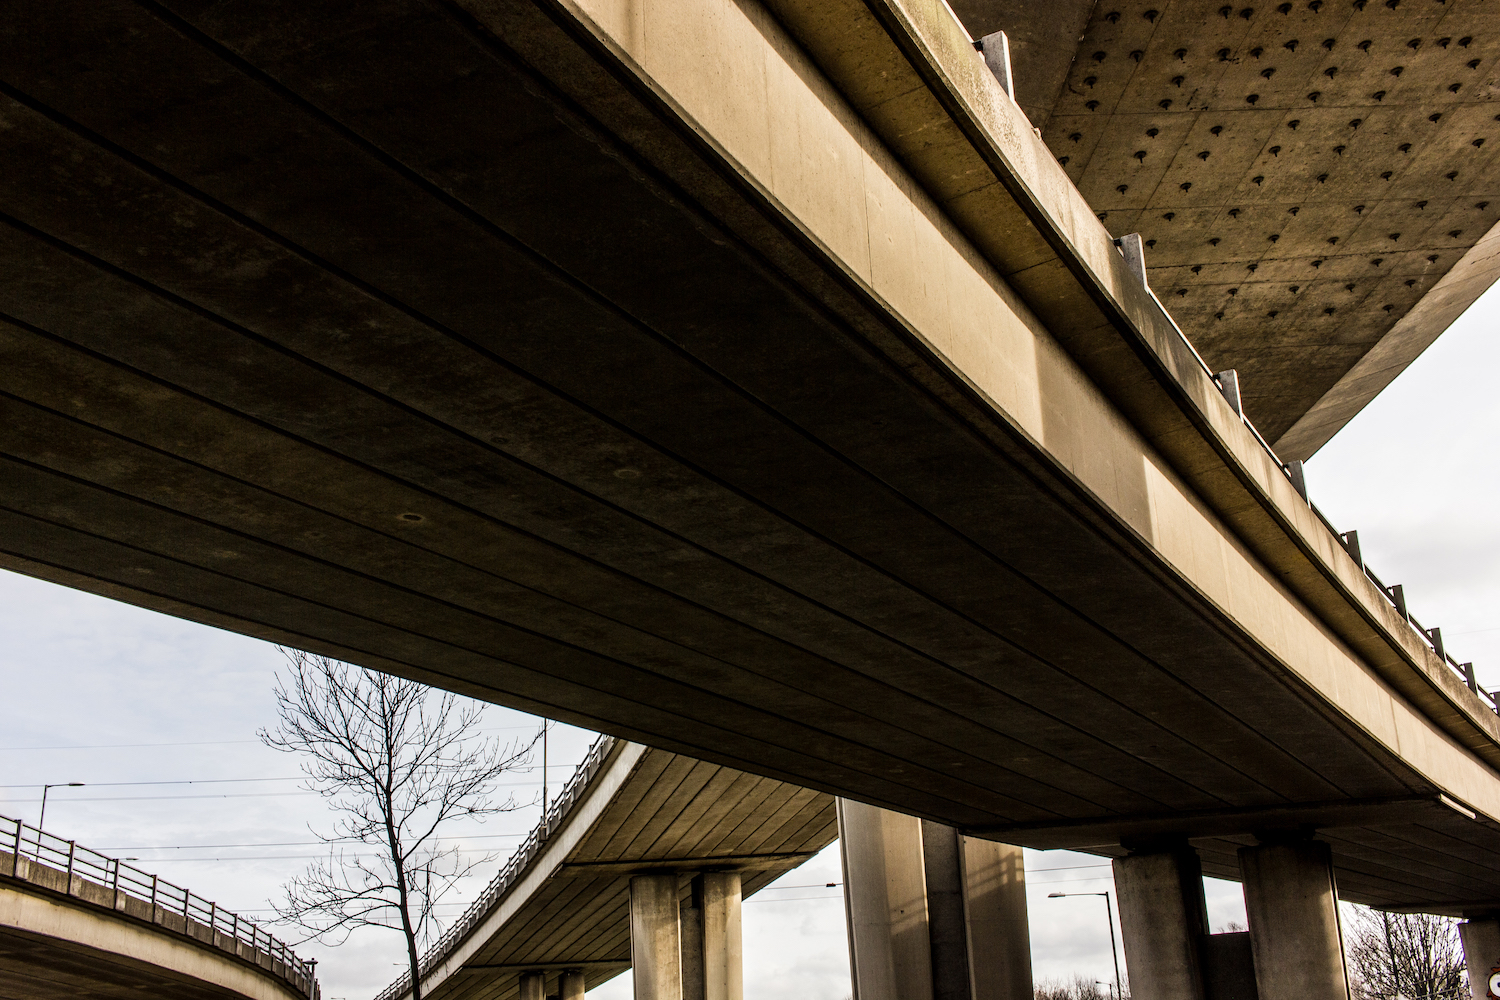 Professional Photography Concrete Roundabout In South Woodford North East London With Four Overlapping Overpasses And Pillars